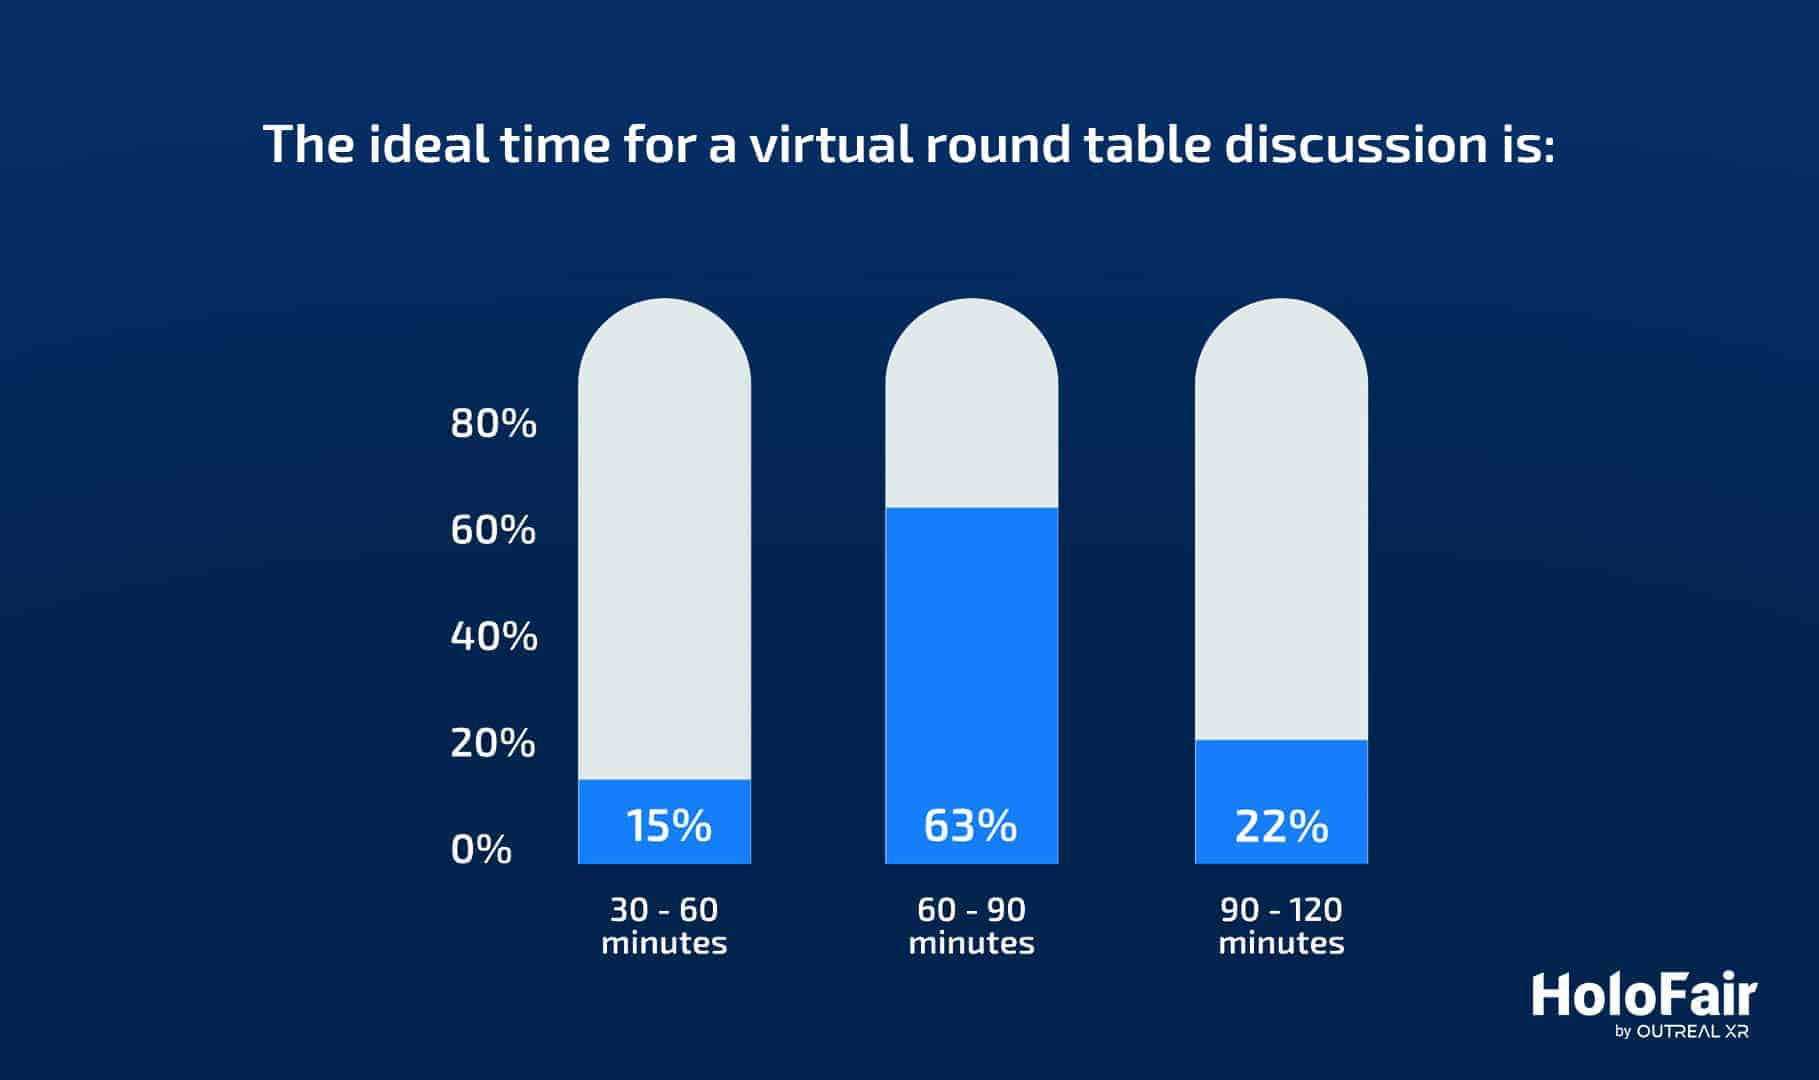 """<p>According to 1,508 respondents, 63% claim that the ideal time for a round table or conference discussion is between 60 and 90 minutes. <a href=""""https://www.markletic.com/blog/virtual-event-statistics/"""" target=""""_blank"""" rel=""""noopener"""">(source)</a></p>"""